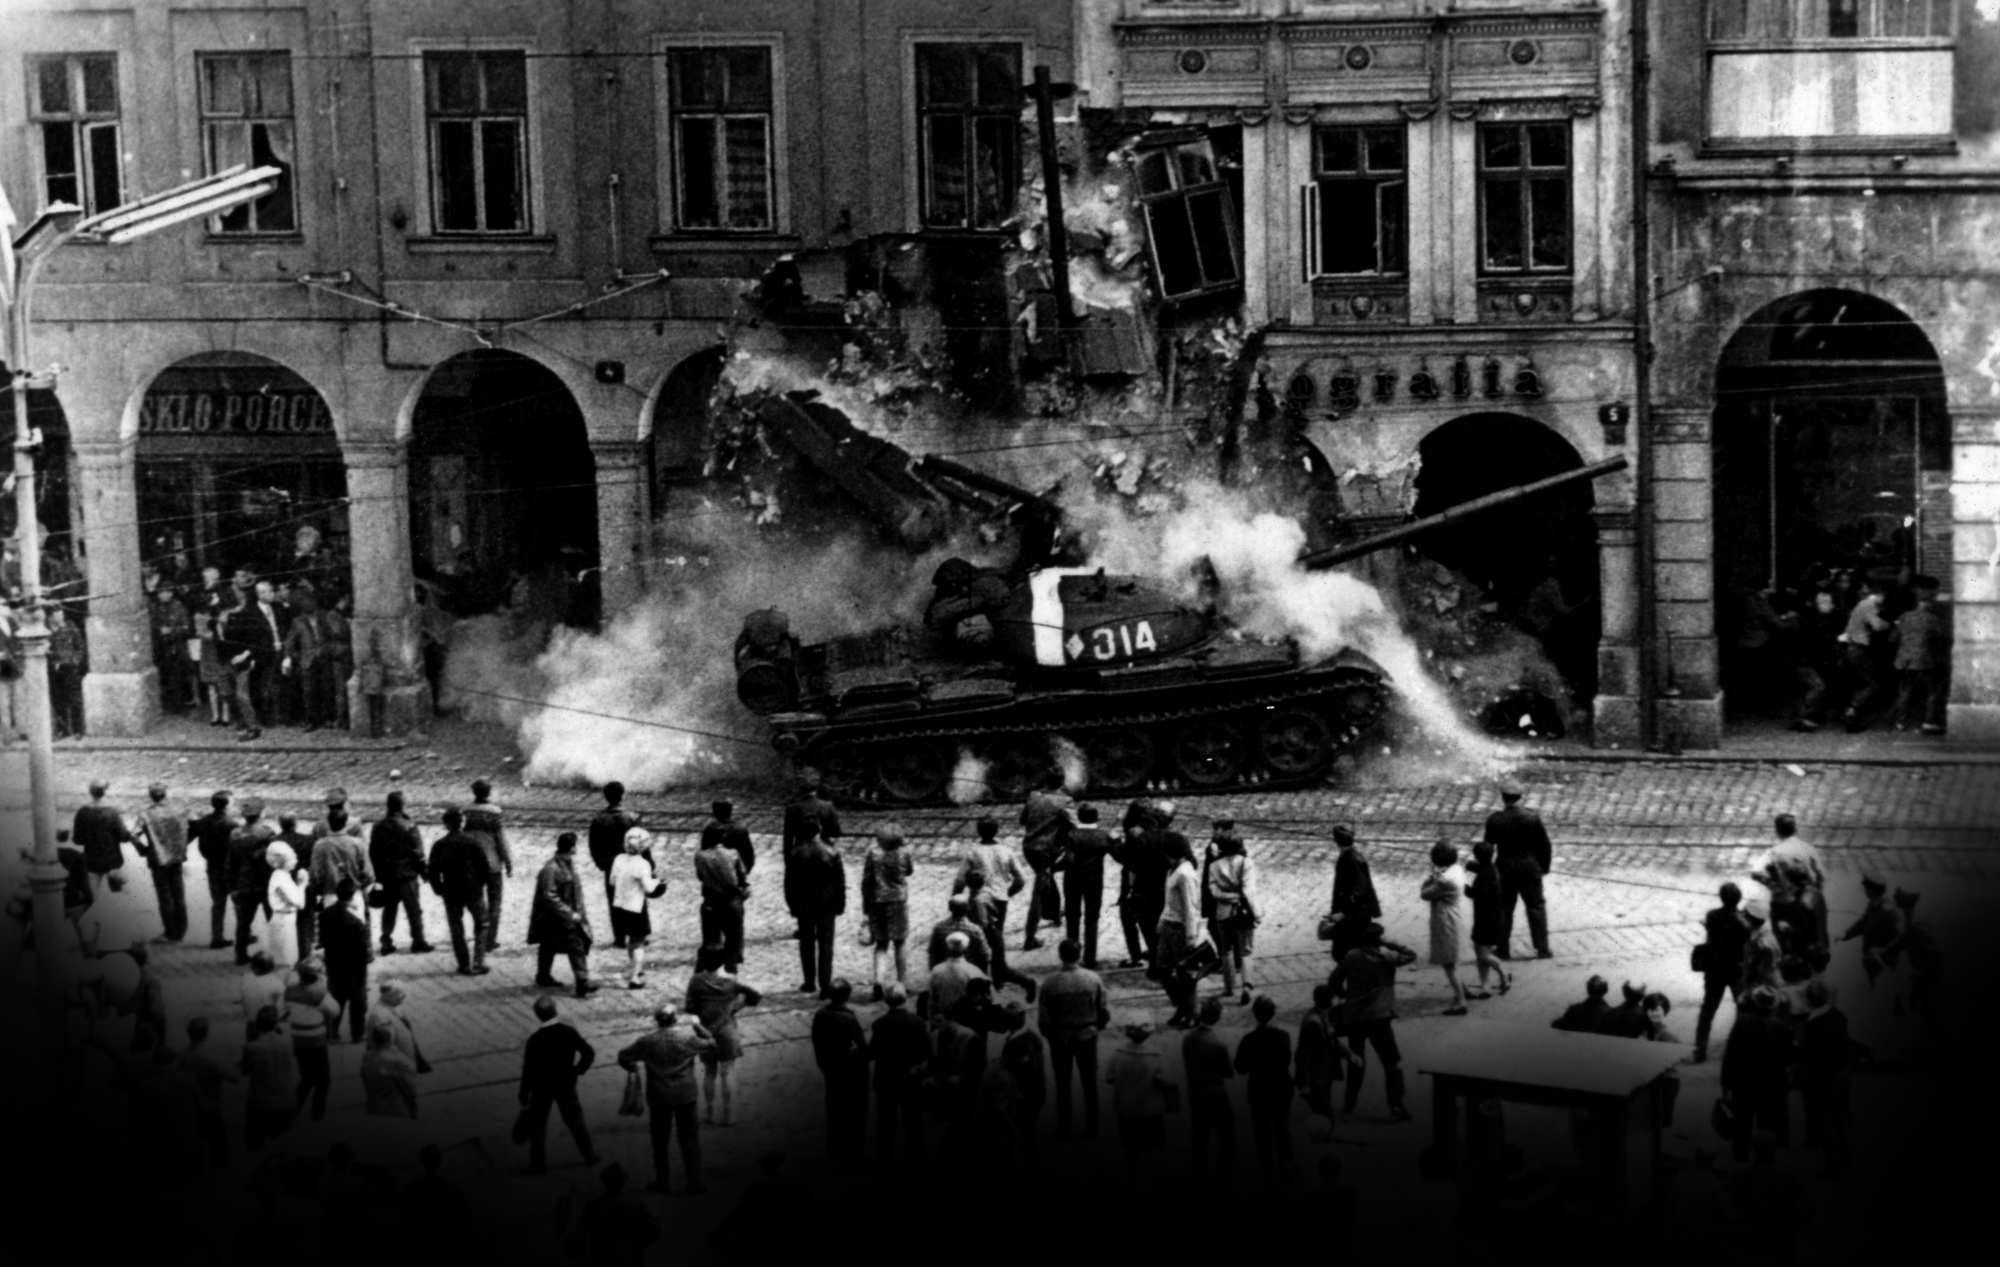 Prague Spring: two thousand tanks against two thousand words 31